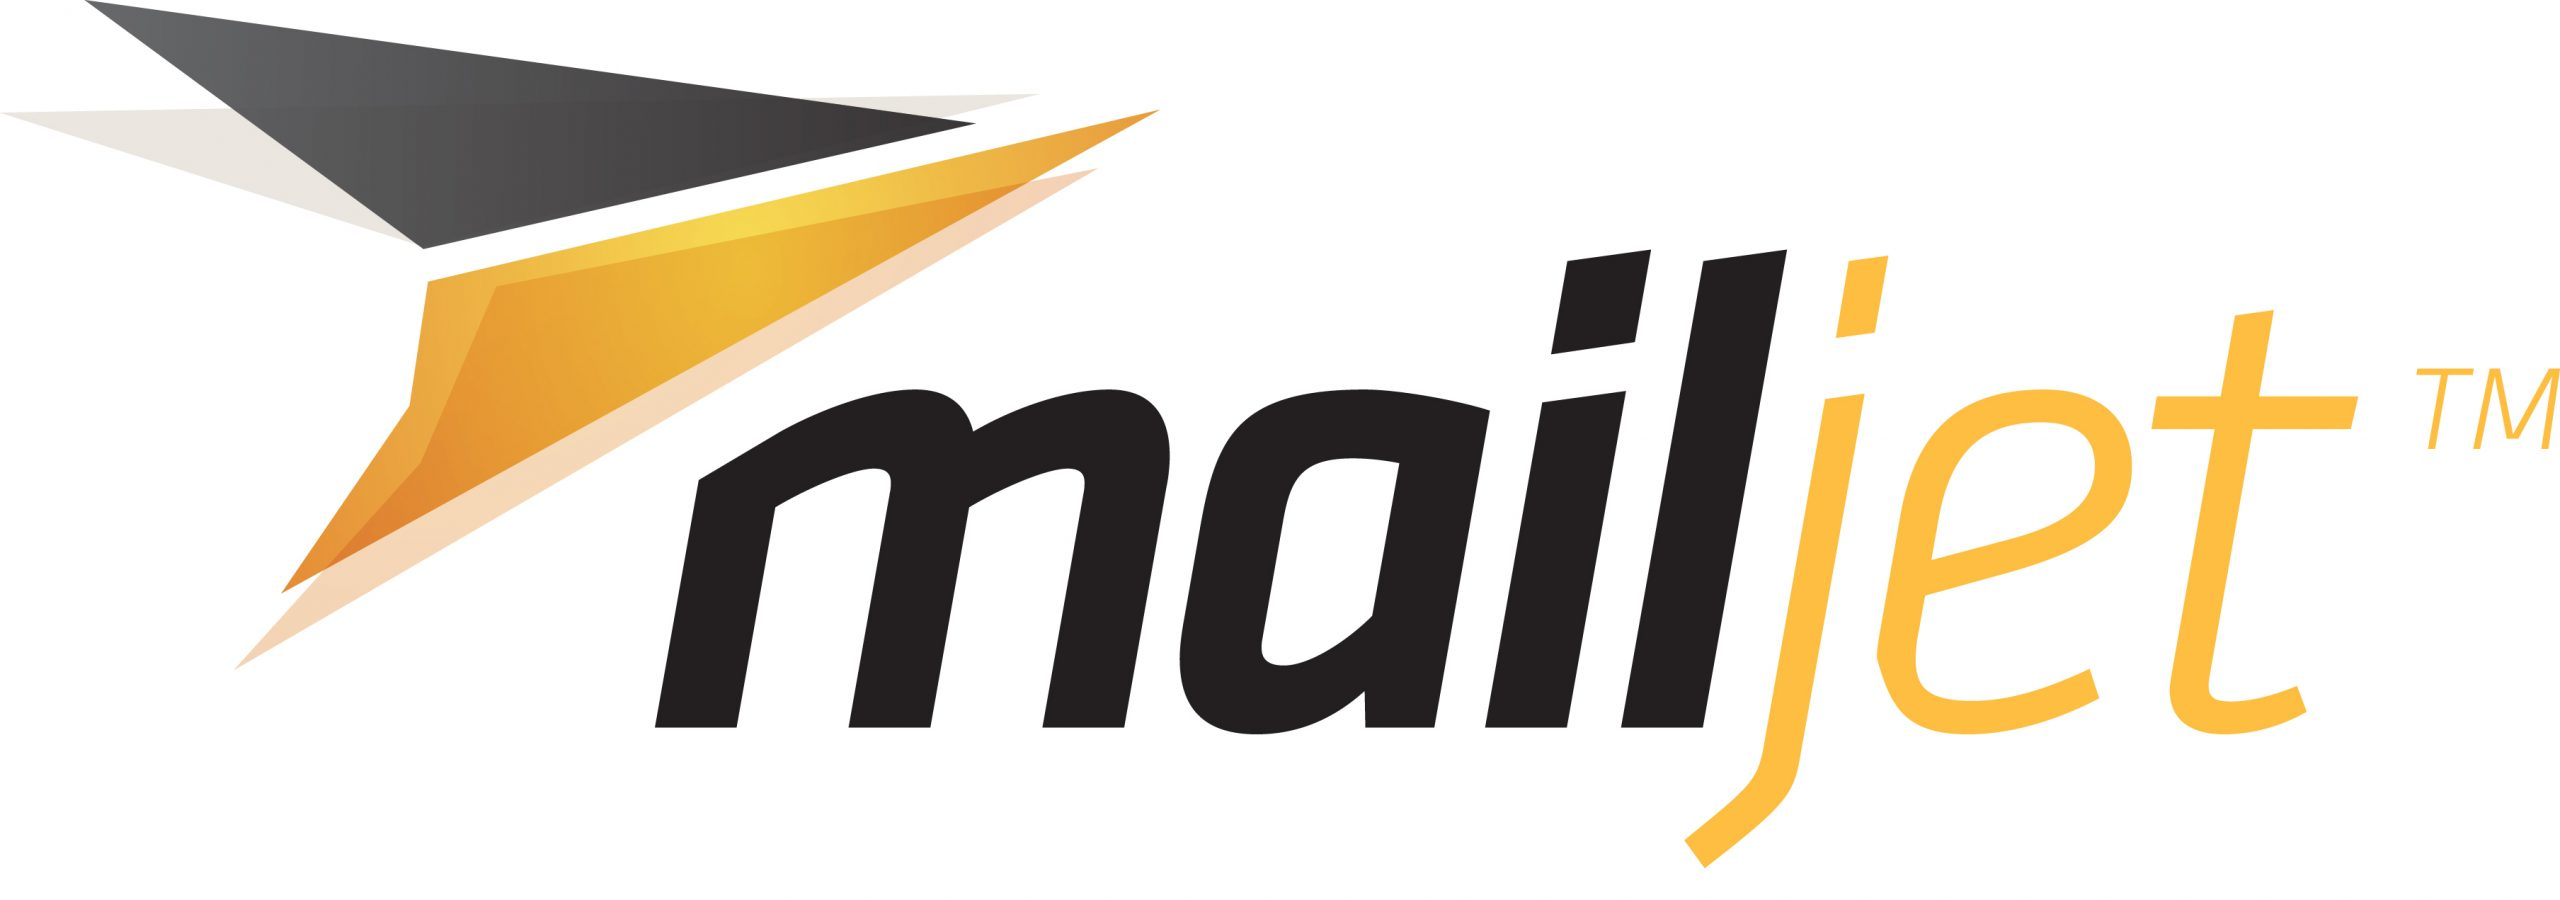 Herramientas para email marketing - mailjet